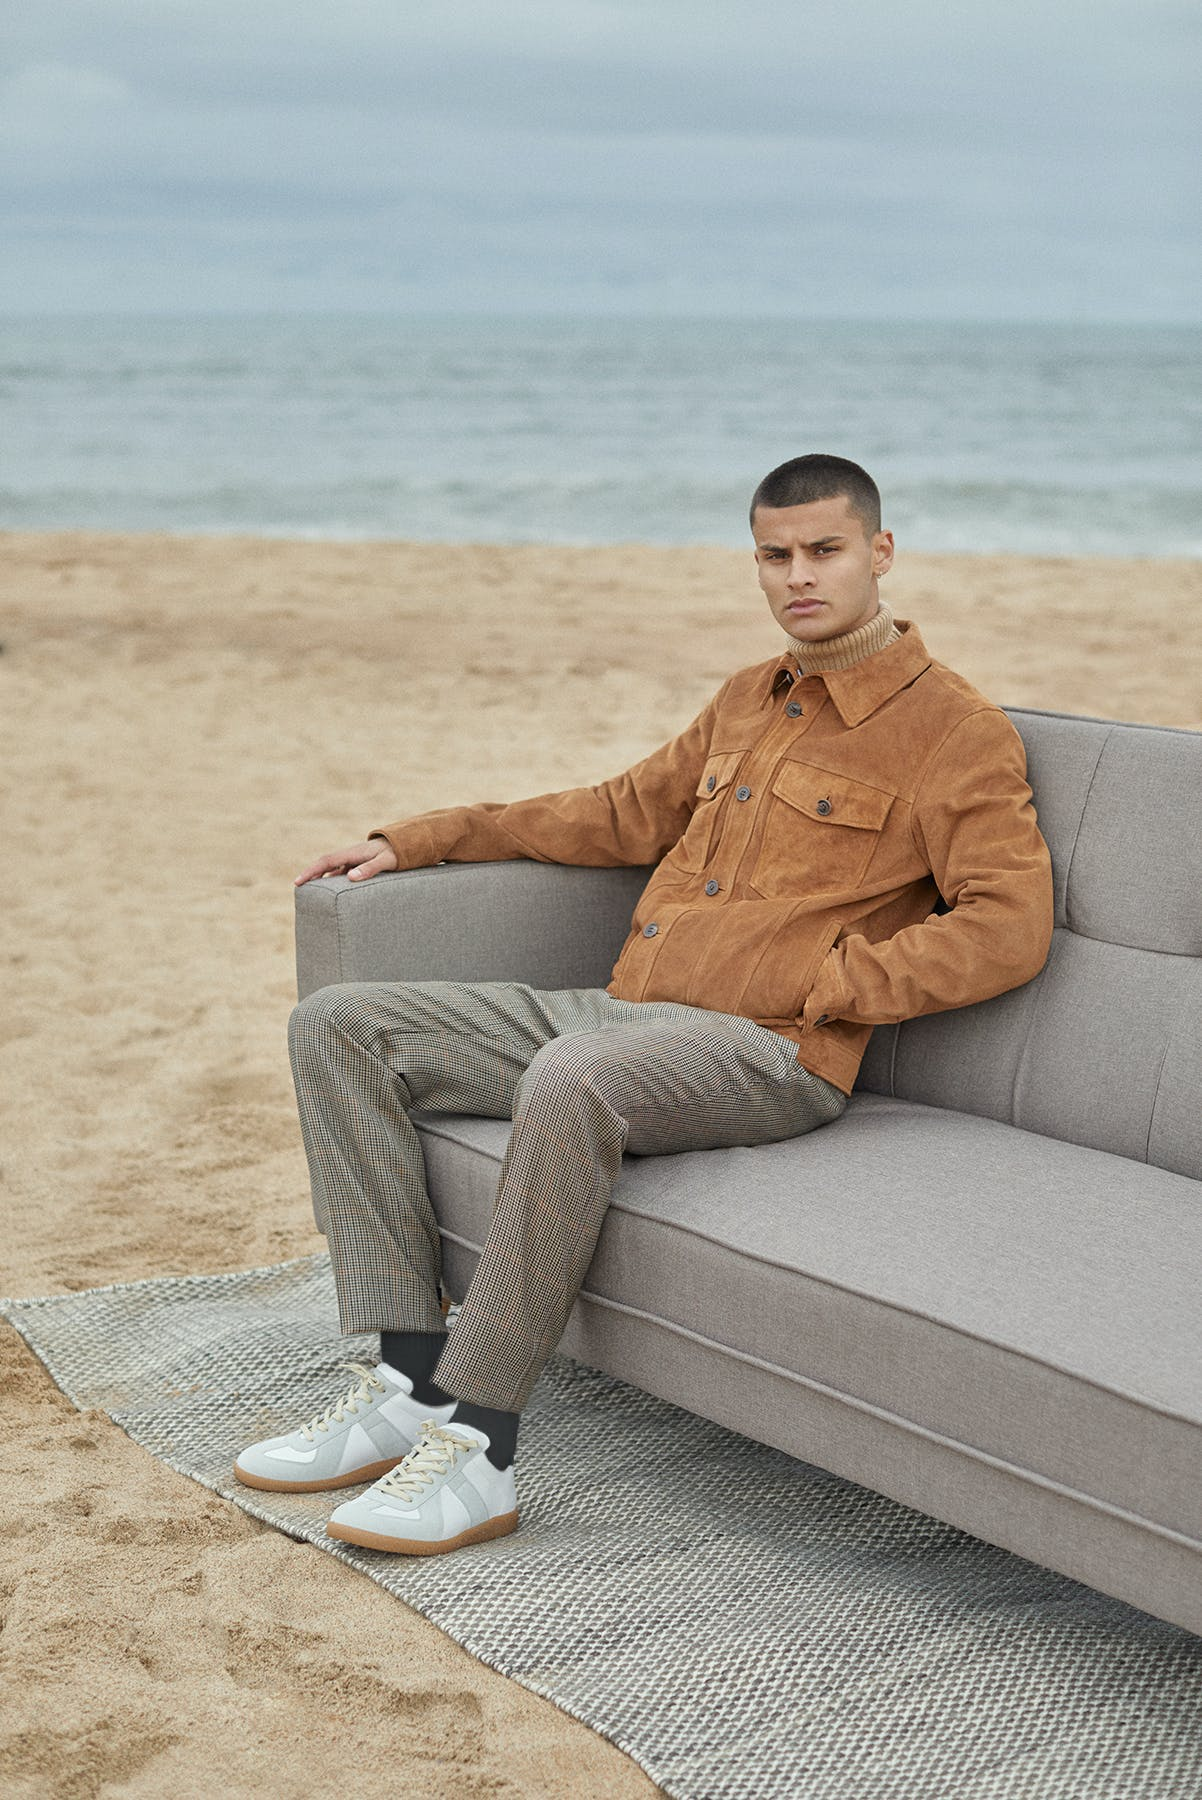 Suede A.P.C. jacket worn for Bare Minimum END. editorial on sofa at the beach